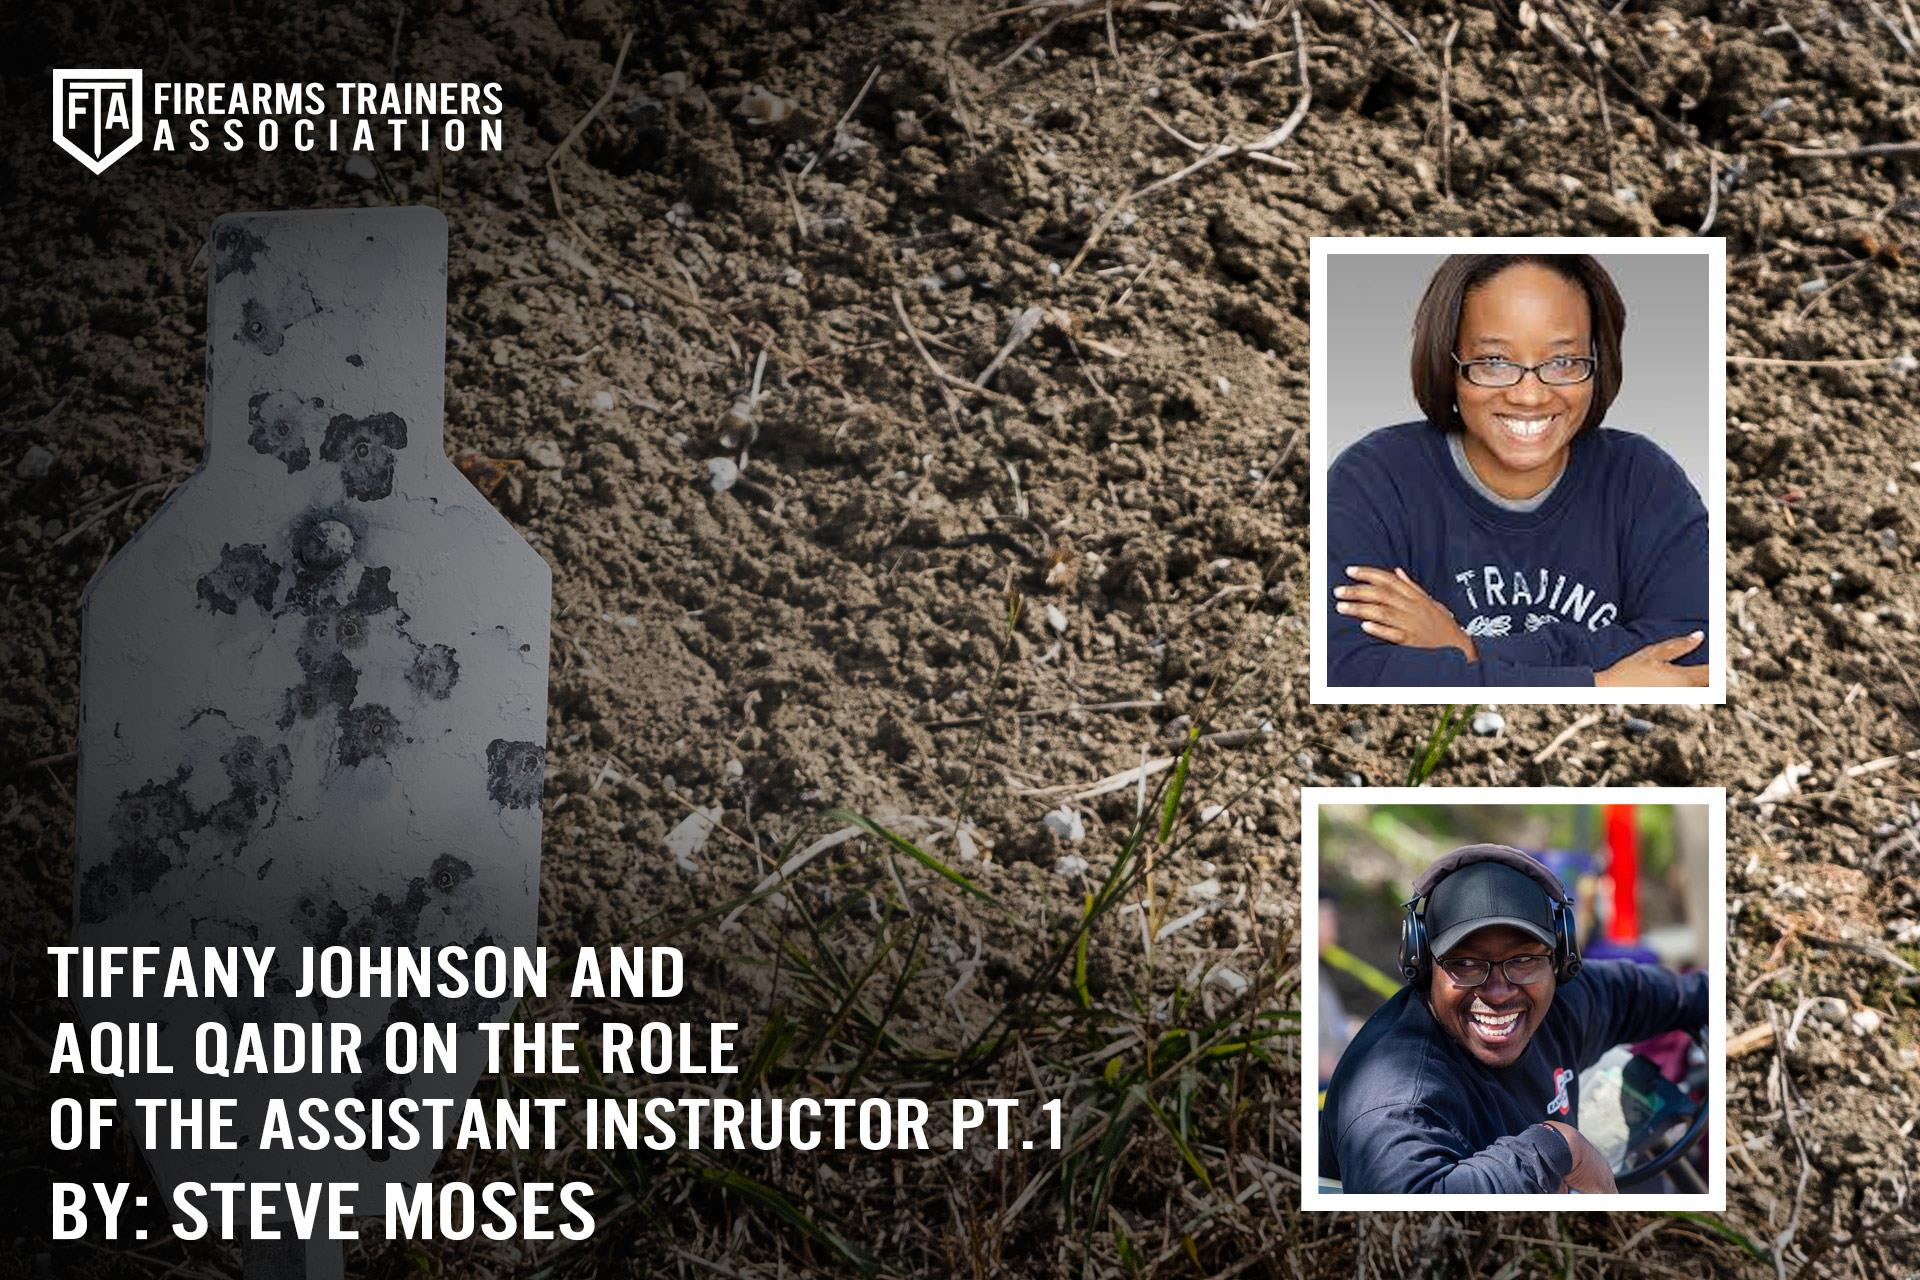 TIFFANY JOHNSON AND AQIL QADIR ON THE ROLE OF THE ASSISTANT INSTRUCTOR PT. 1